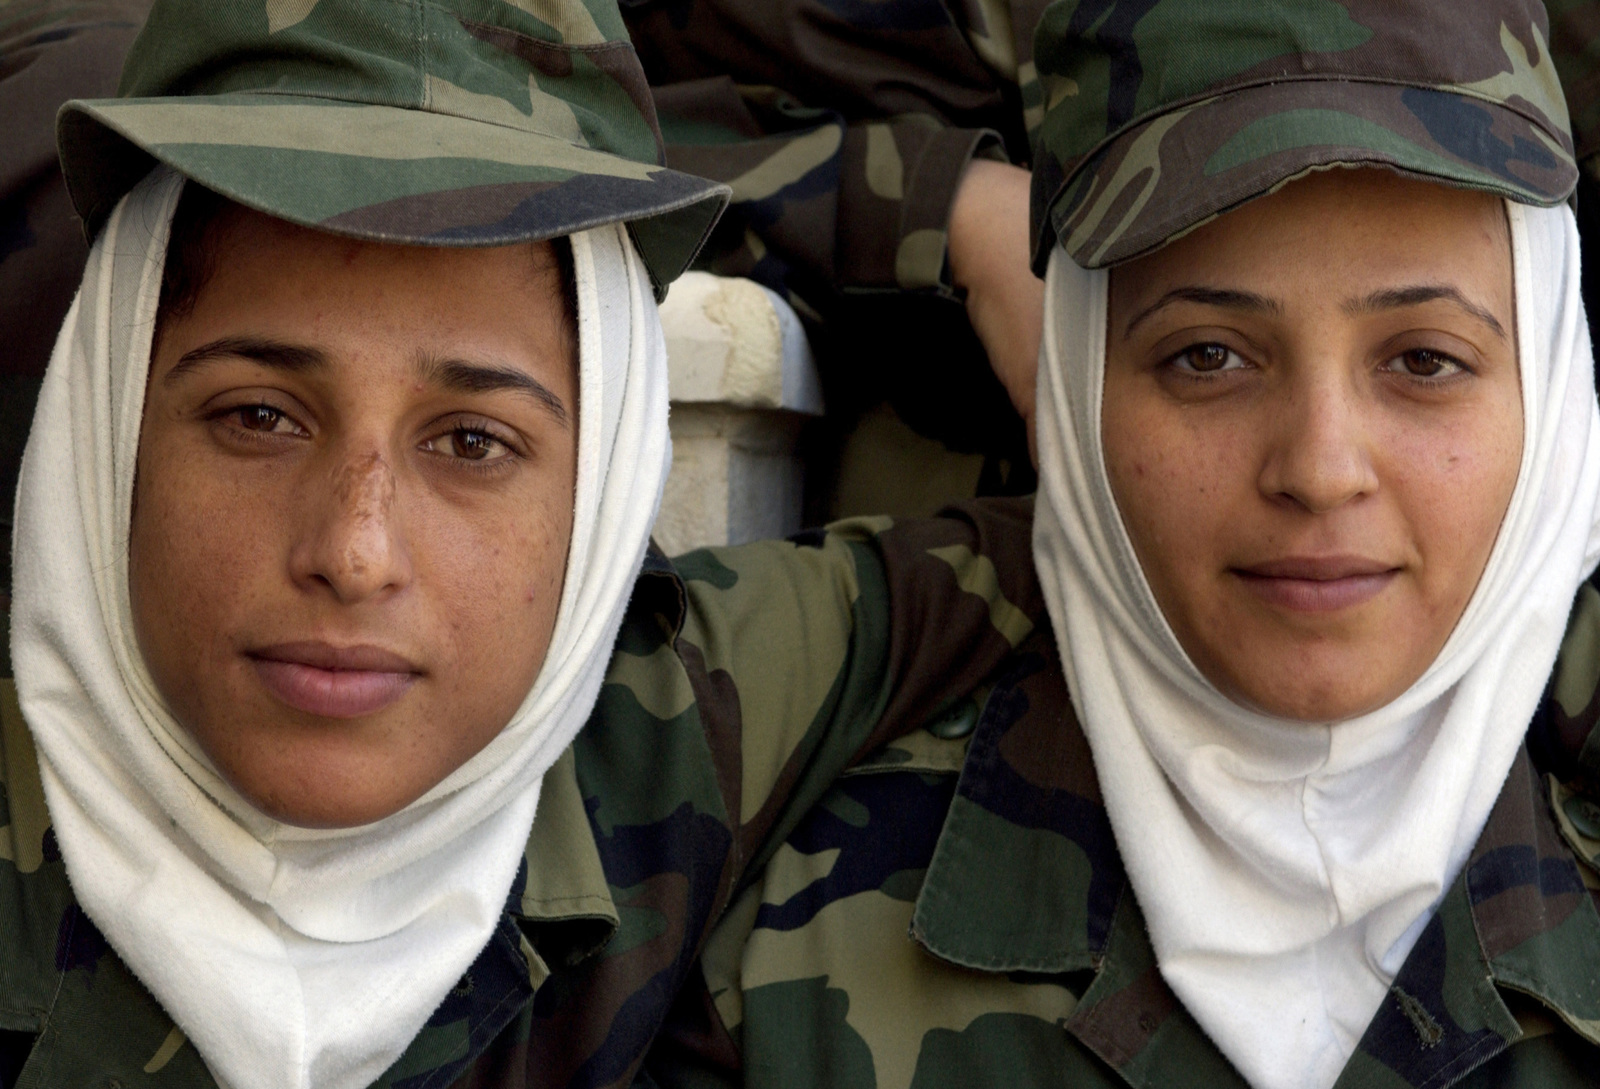 Iraqi Soldiers, from the second class of females, in the new